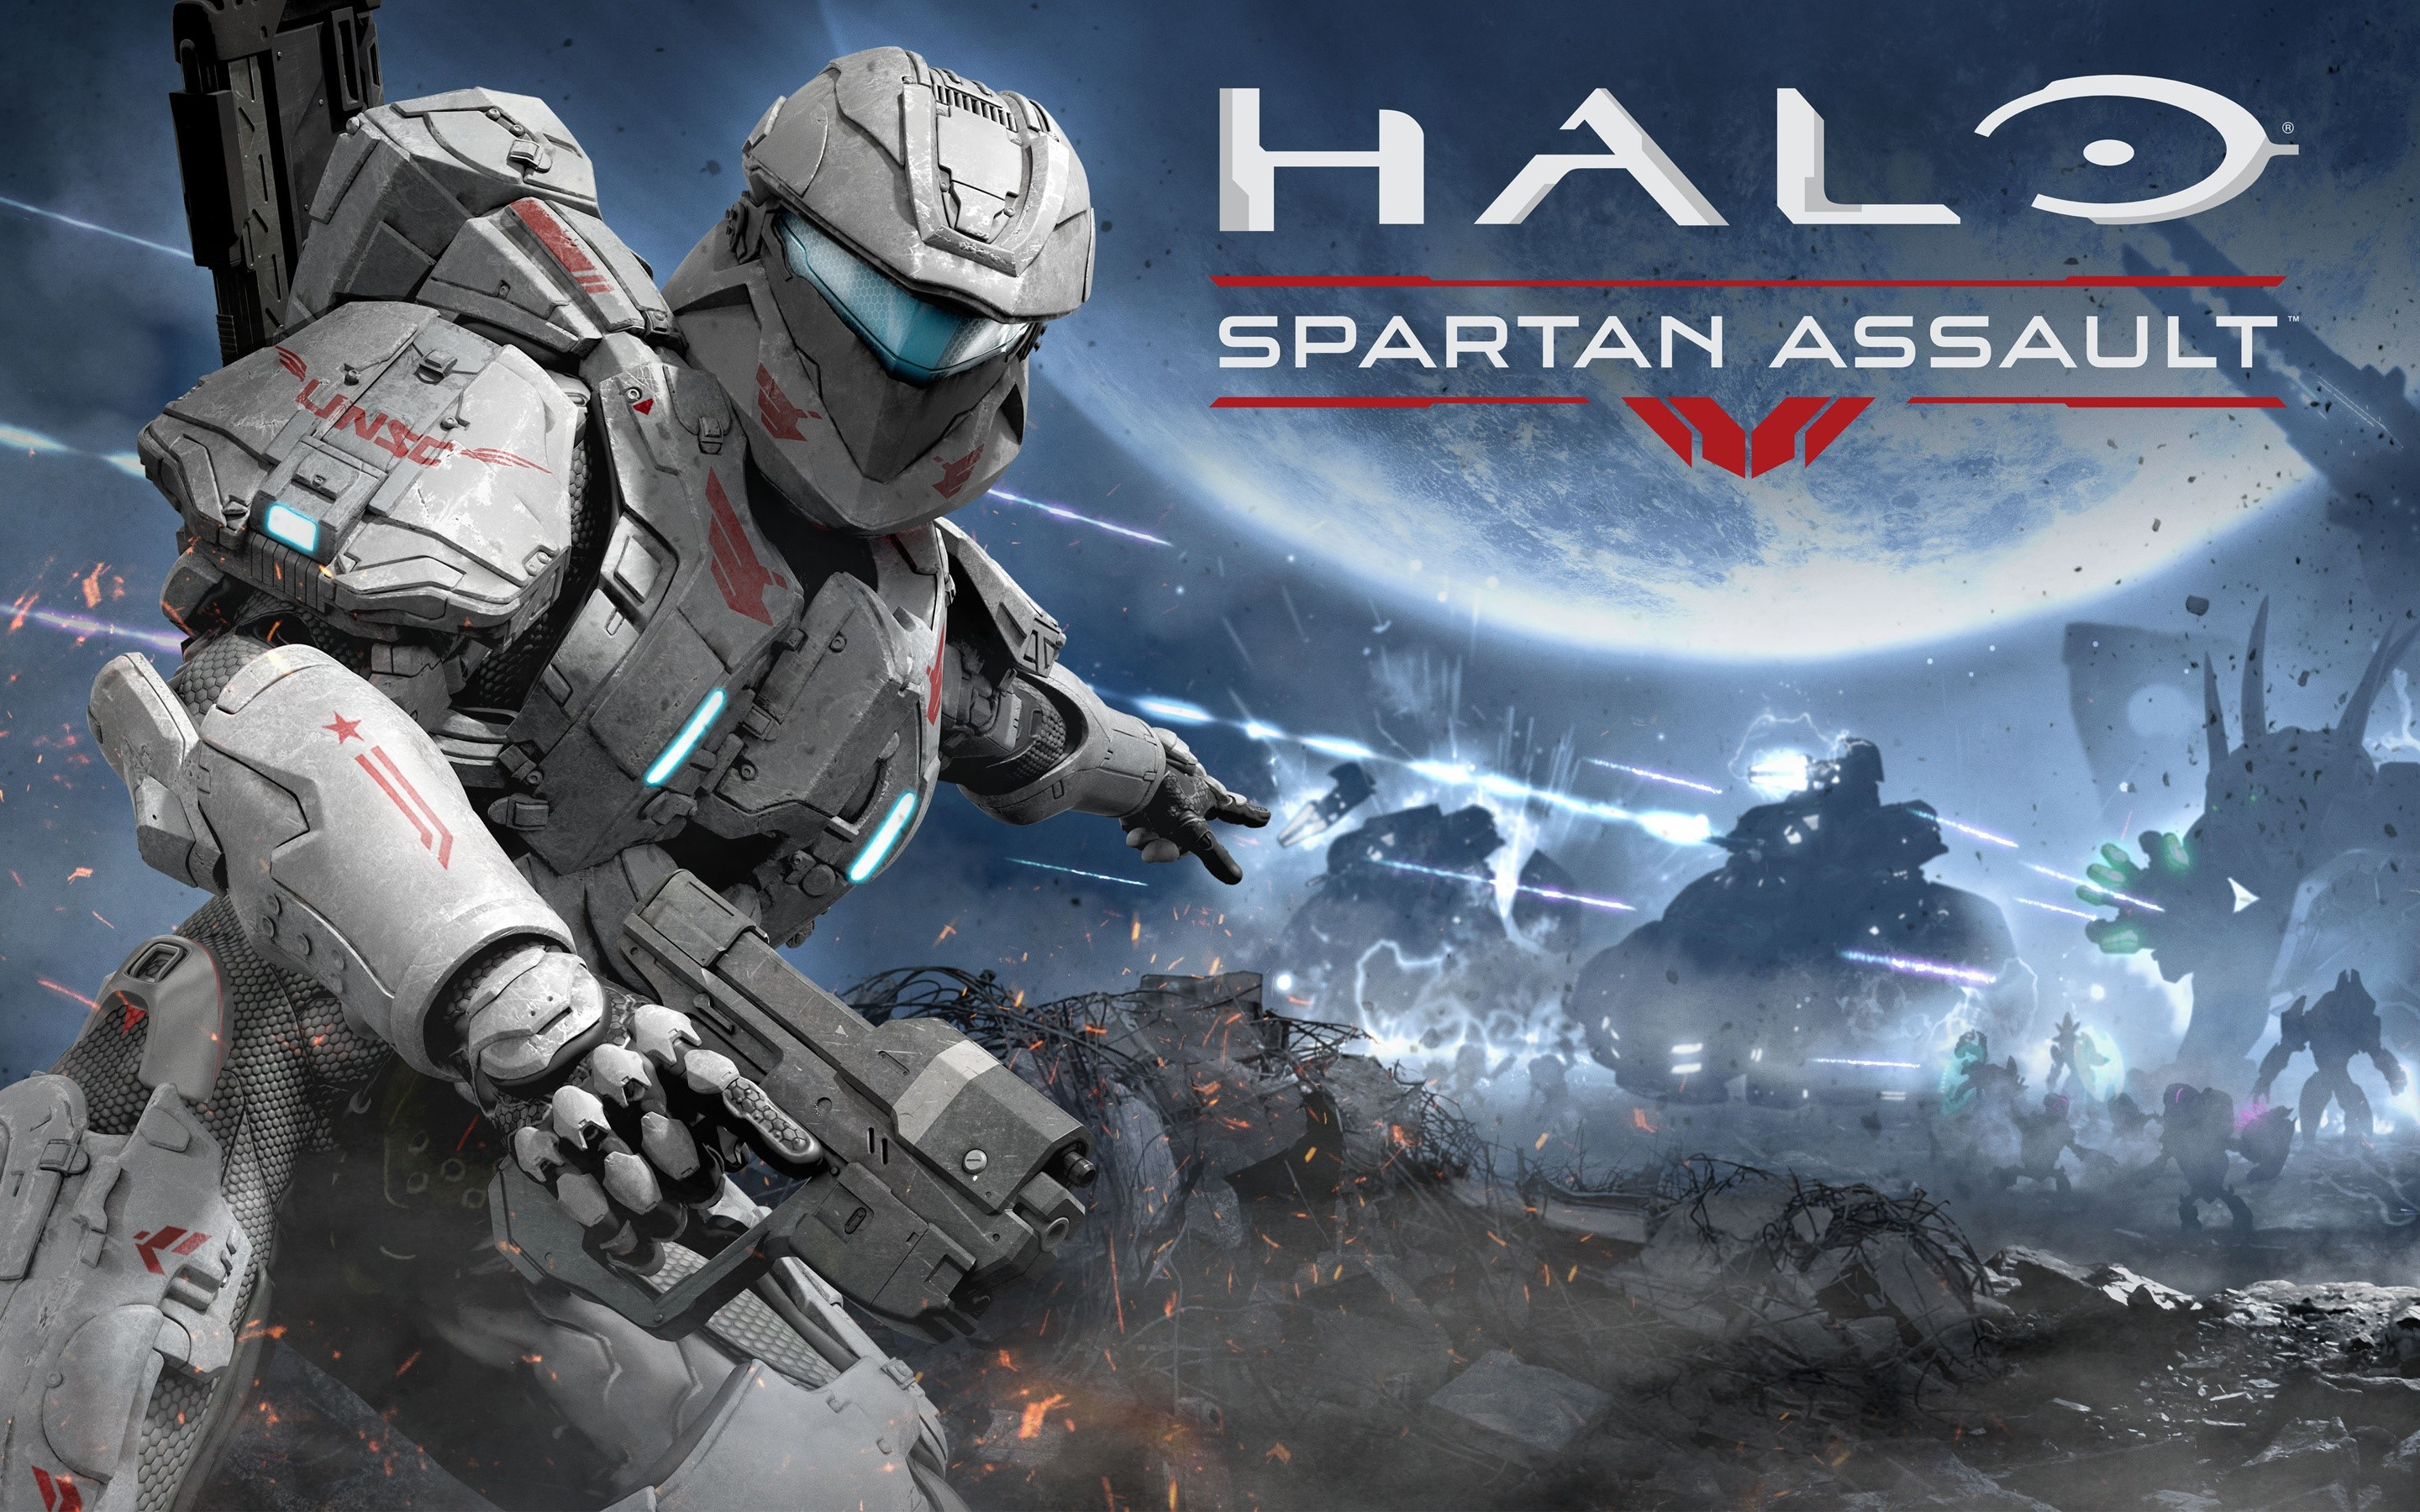 Wallpaper Halo Spartan Assault Images